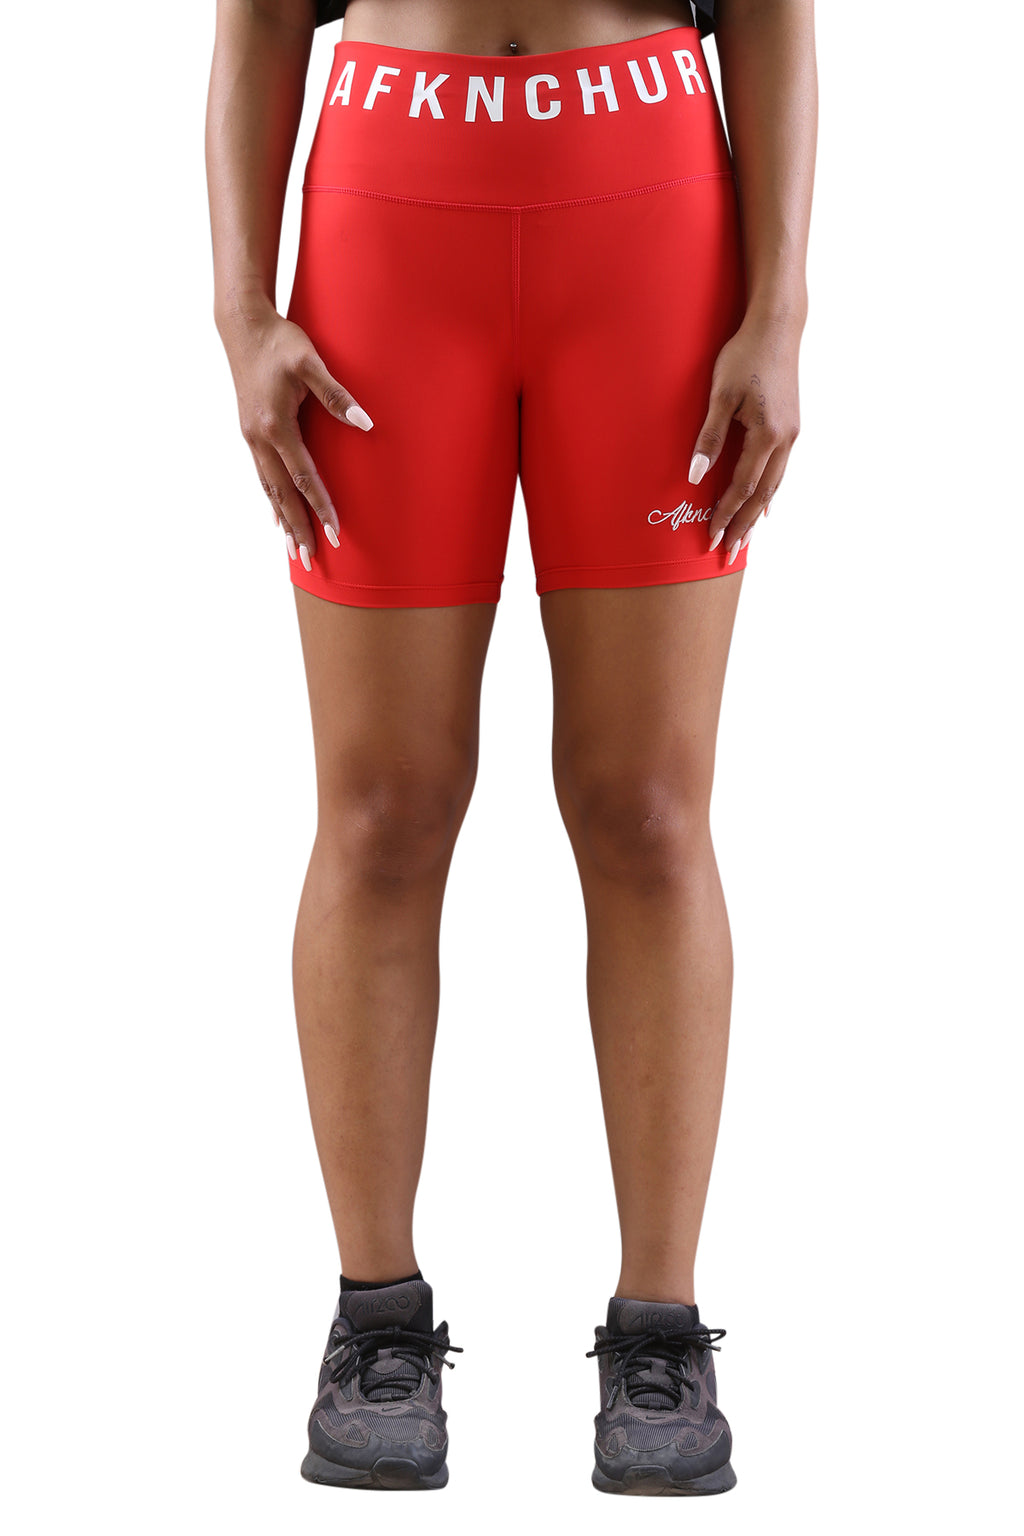 AFKNCHUR Womens Bike Shorts Red Front